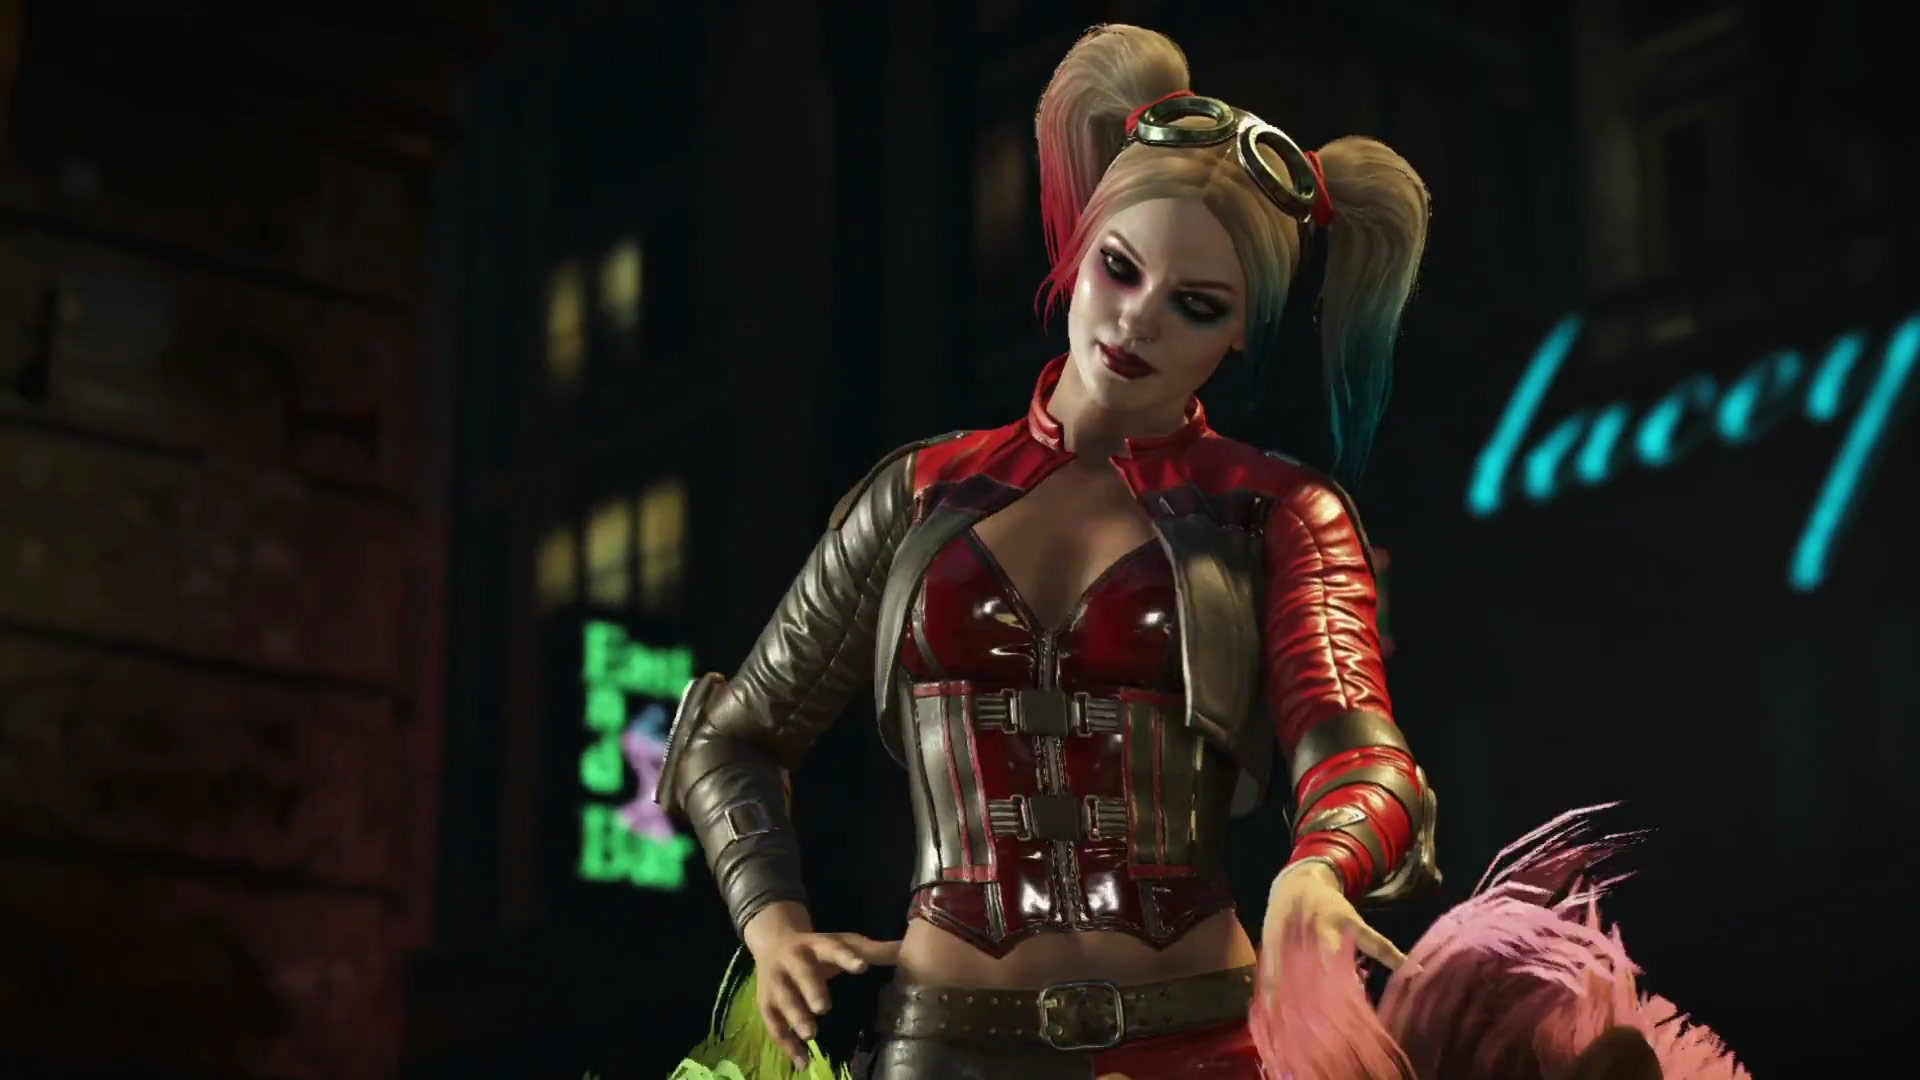 Injustice 2 Harley Quinn And Deadshot Reveal Gallery 1 Out Of 6